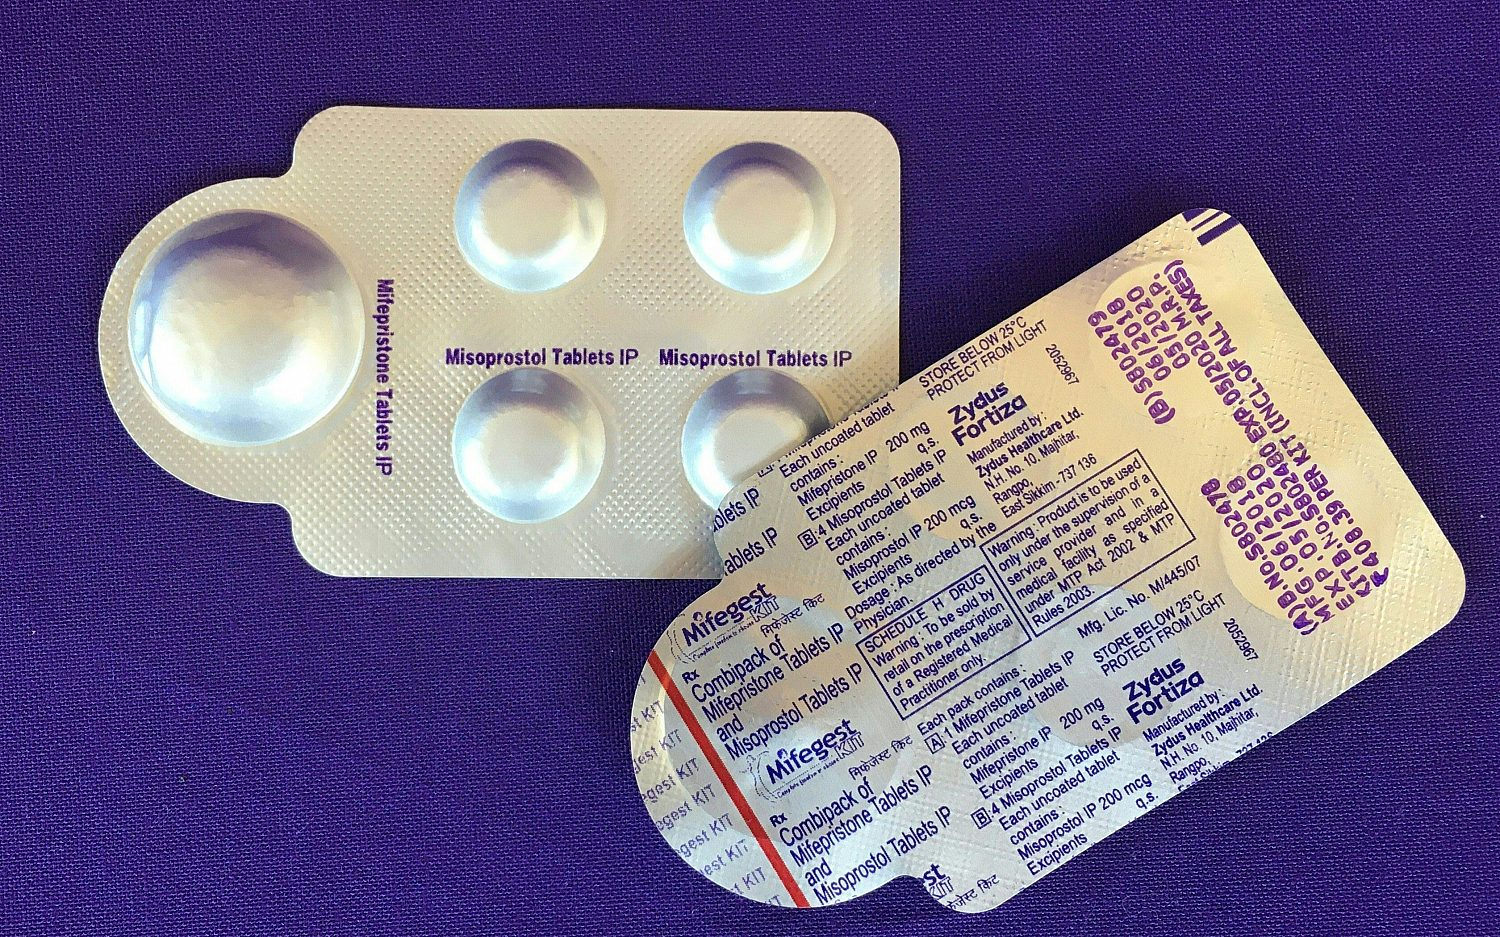 Pro-lifers fight to protect women from dangerous drugs